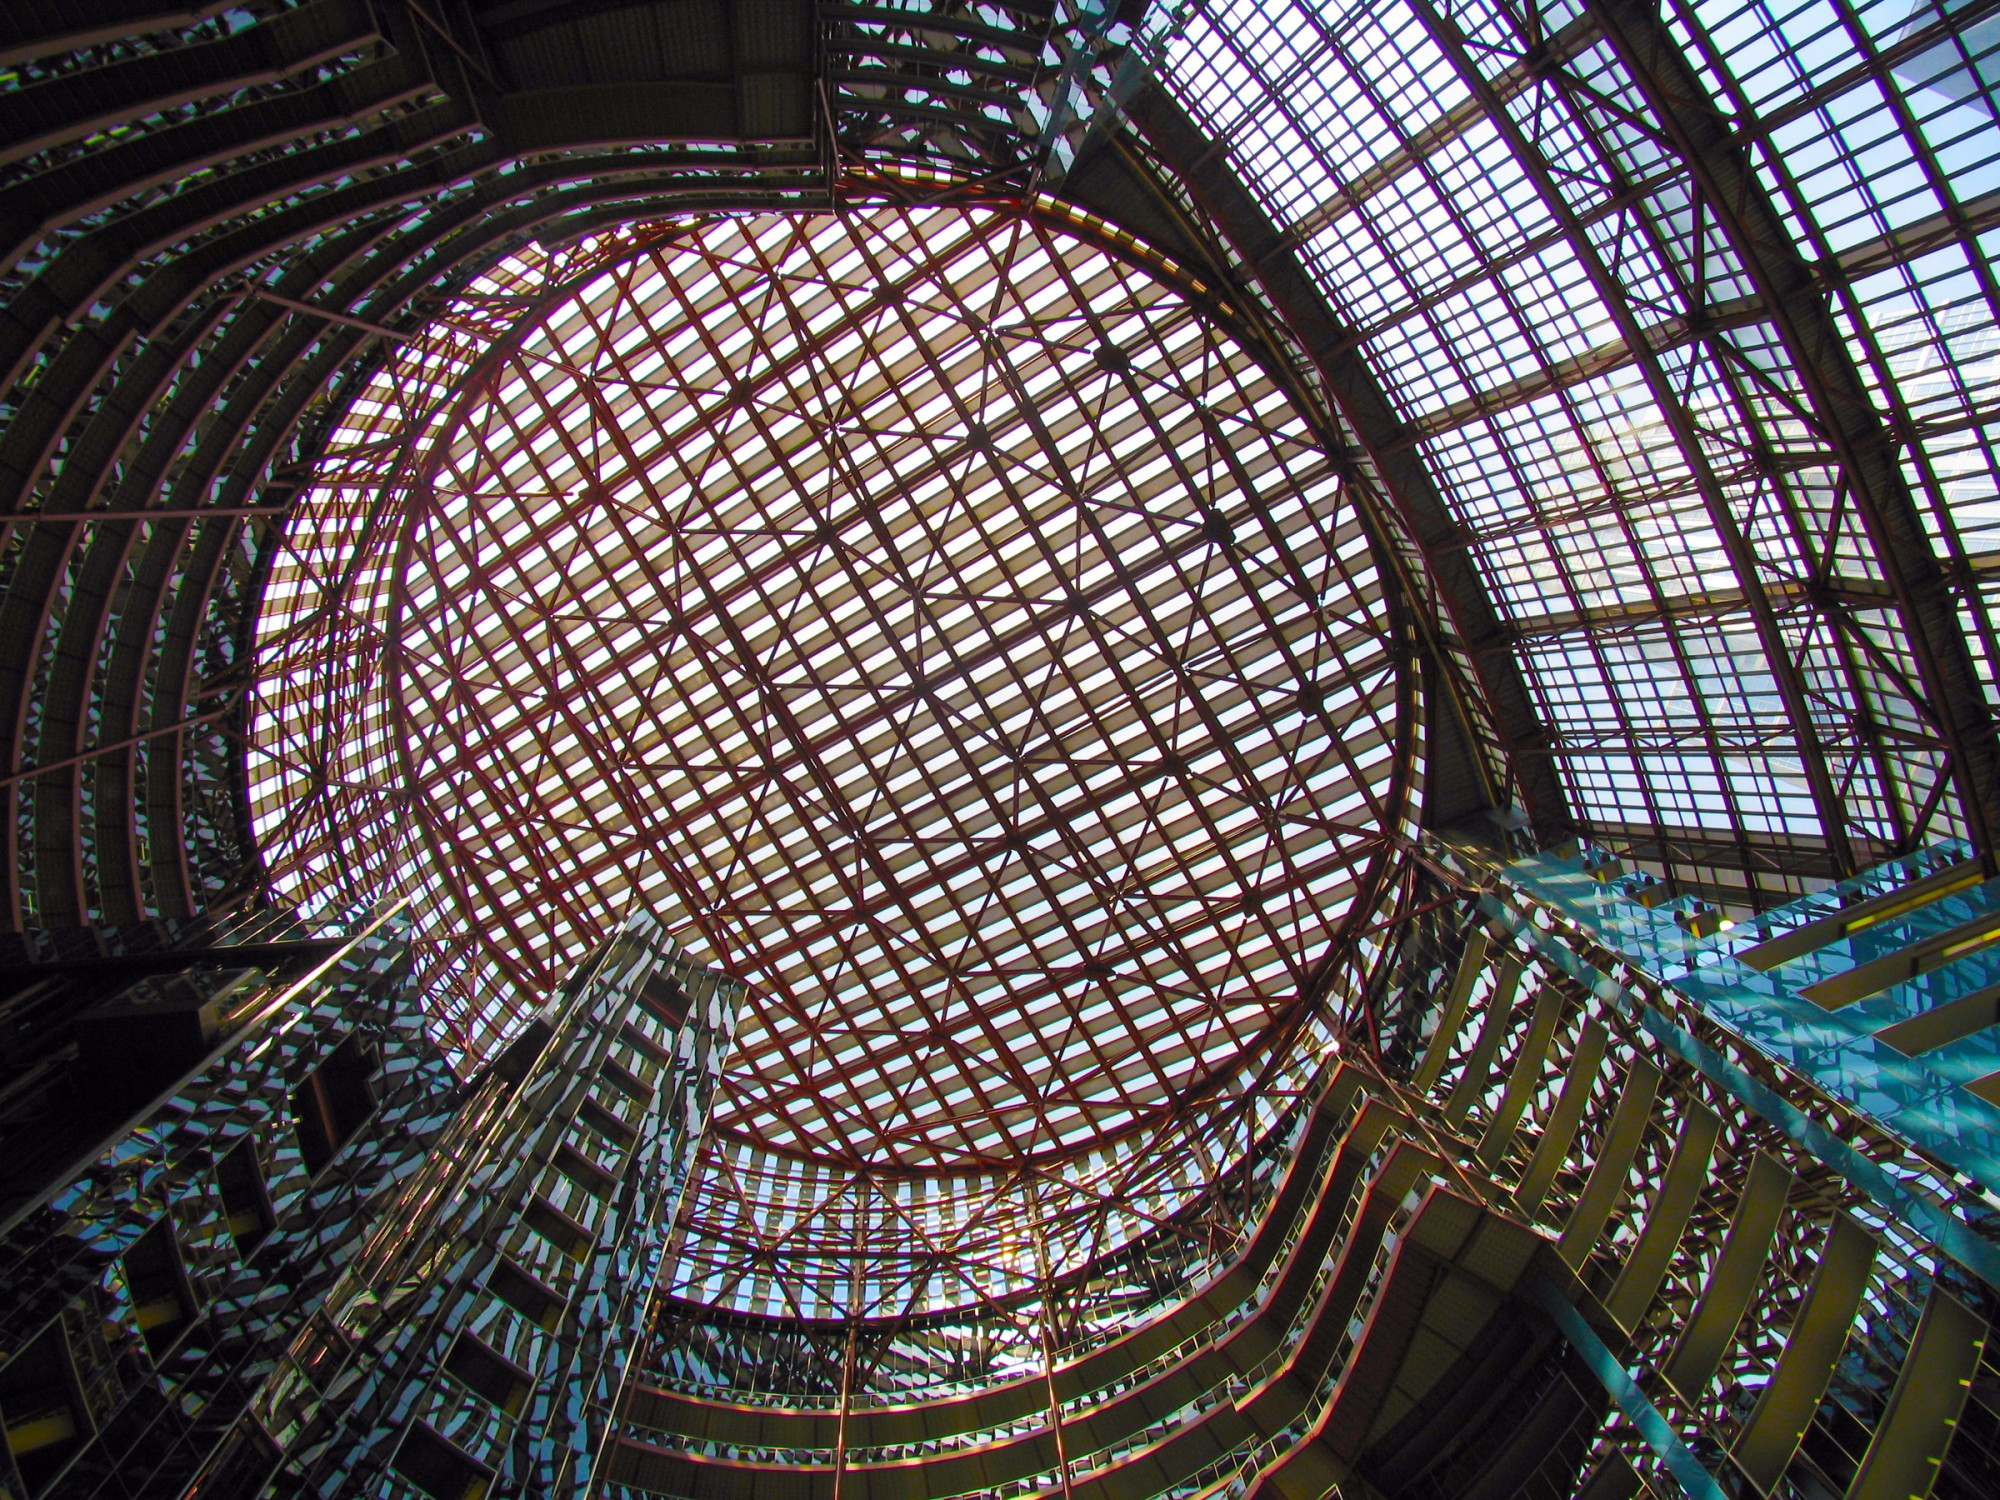 Chicago Architecture thompson center · buildings of chicago · chicago architecture